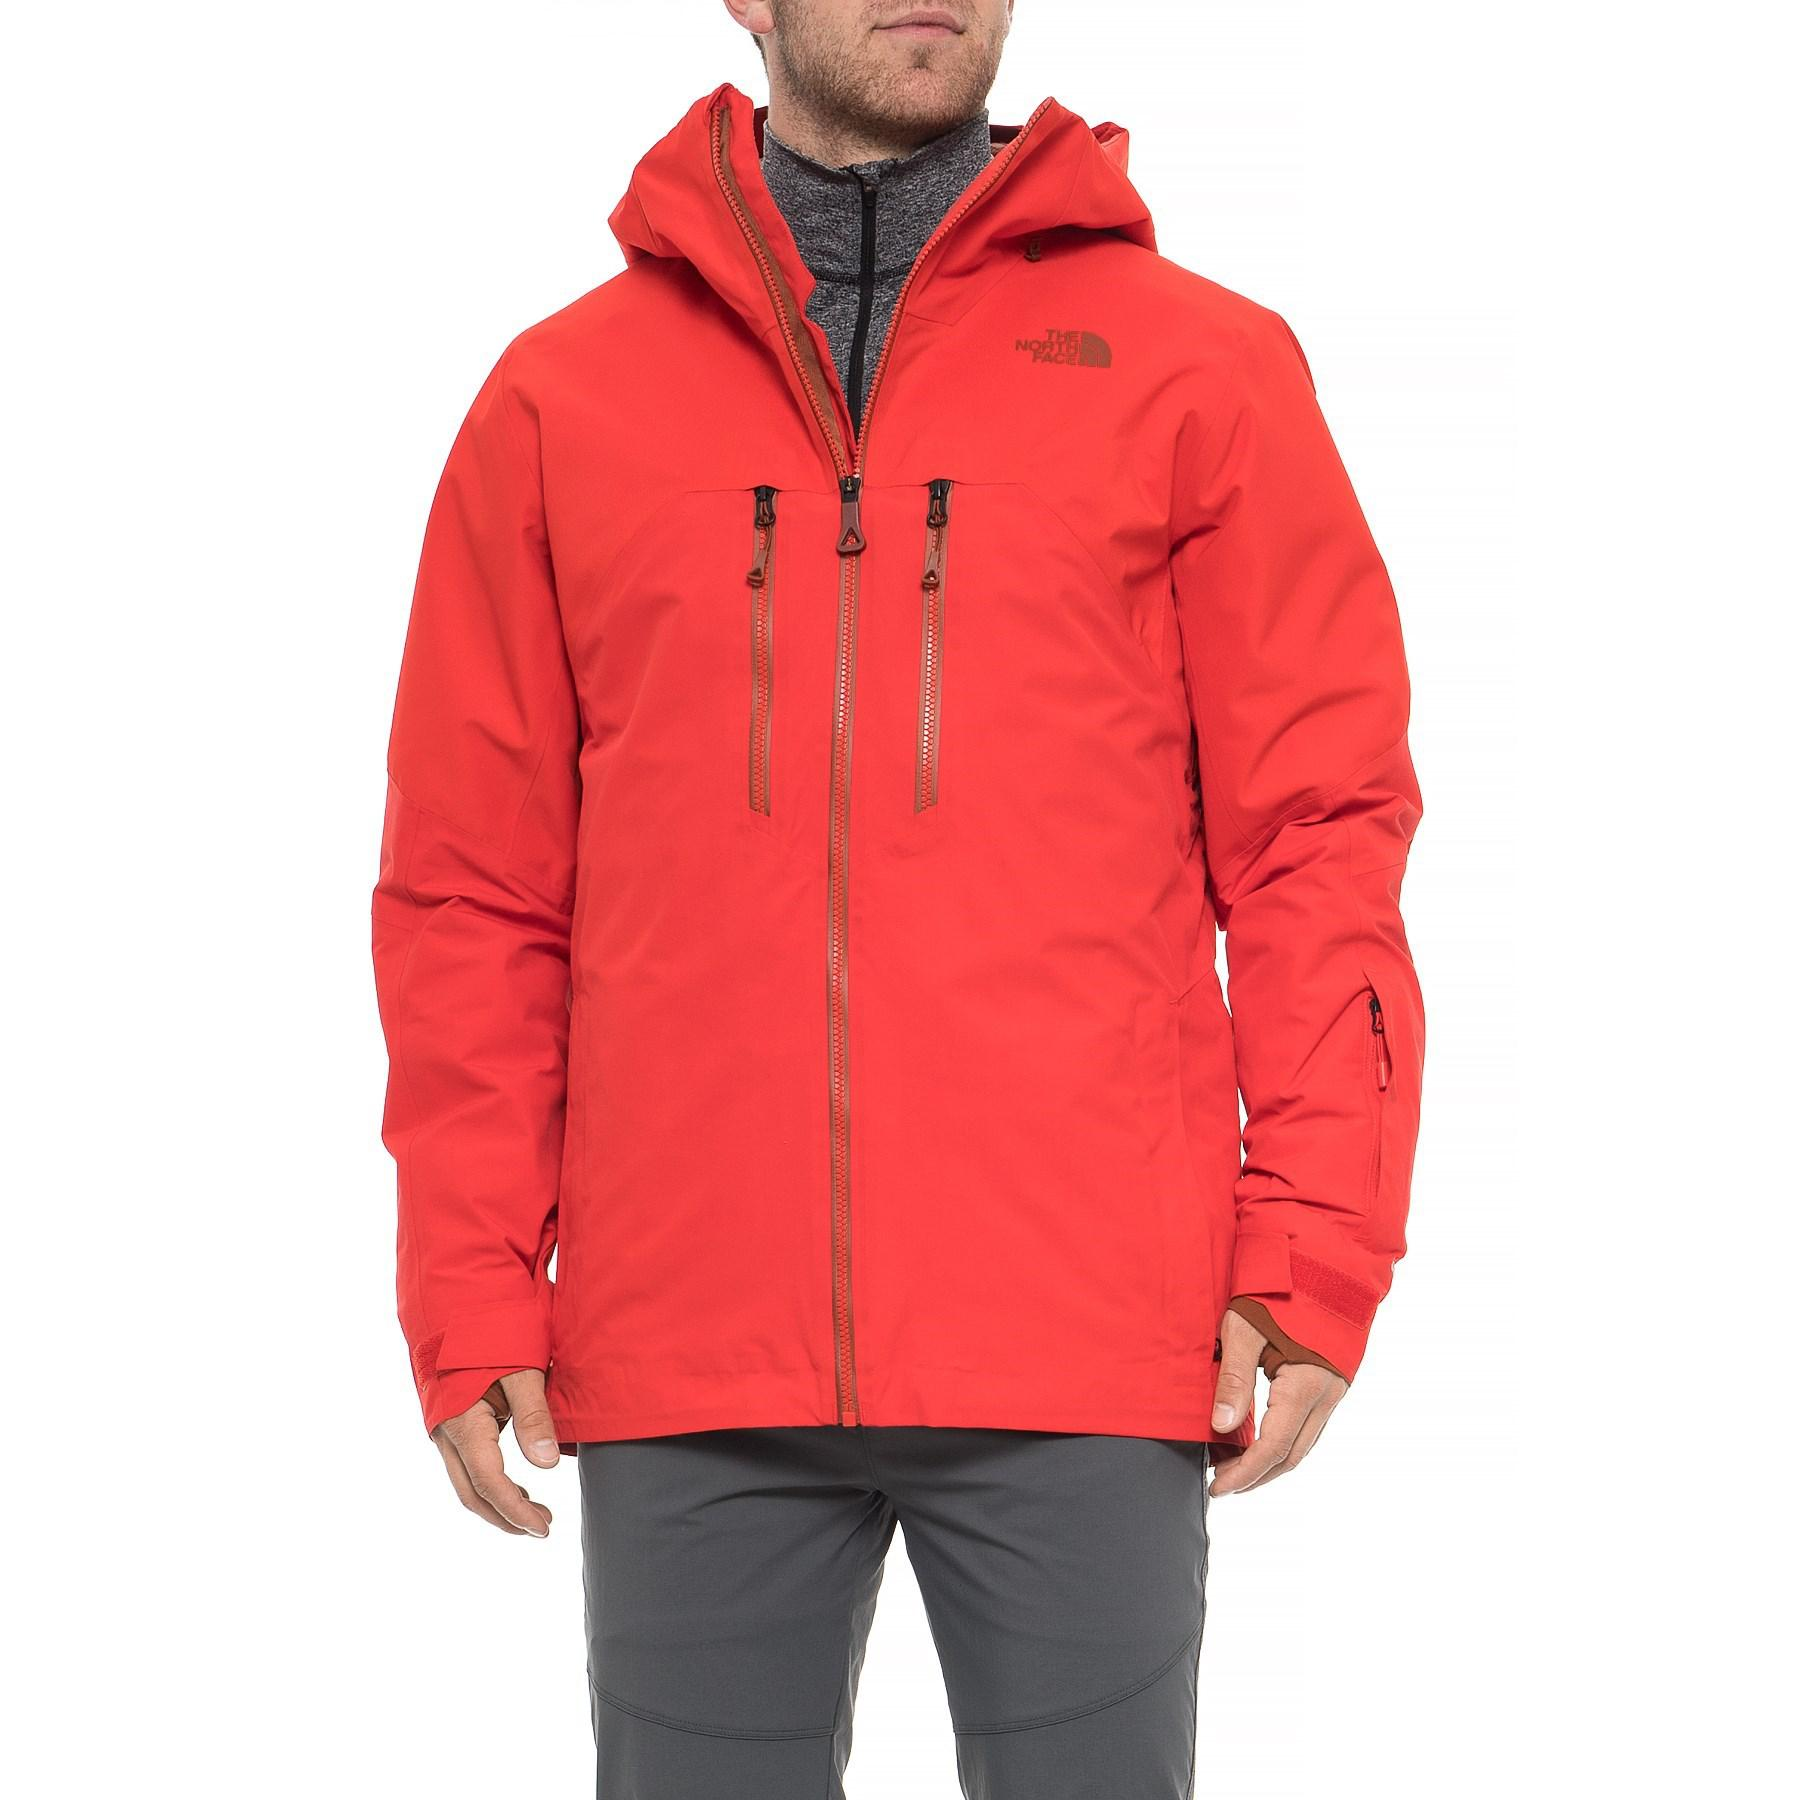 02c178f9cc16 Lyst - The North Face Powder Guide Gore-tex®jacket in Red for Men